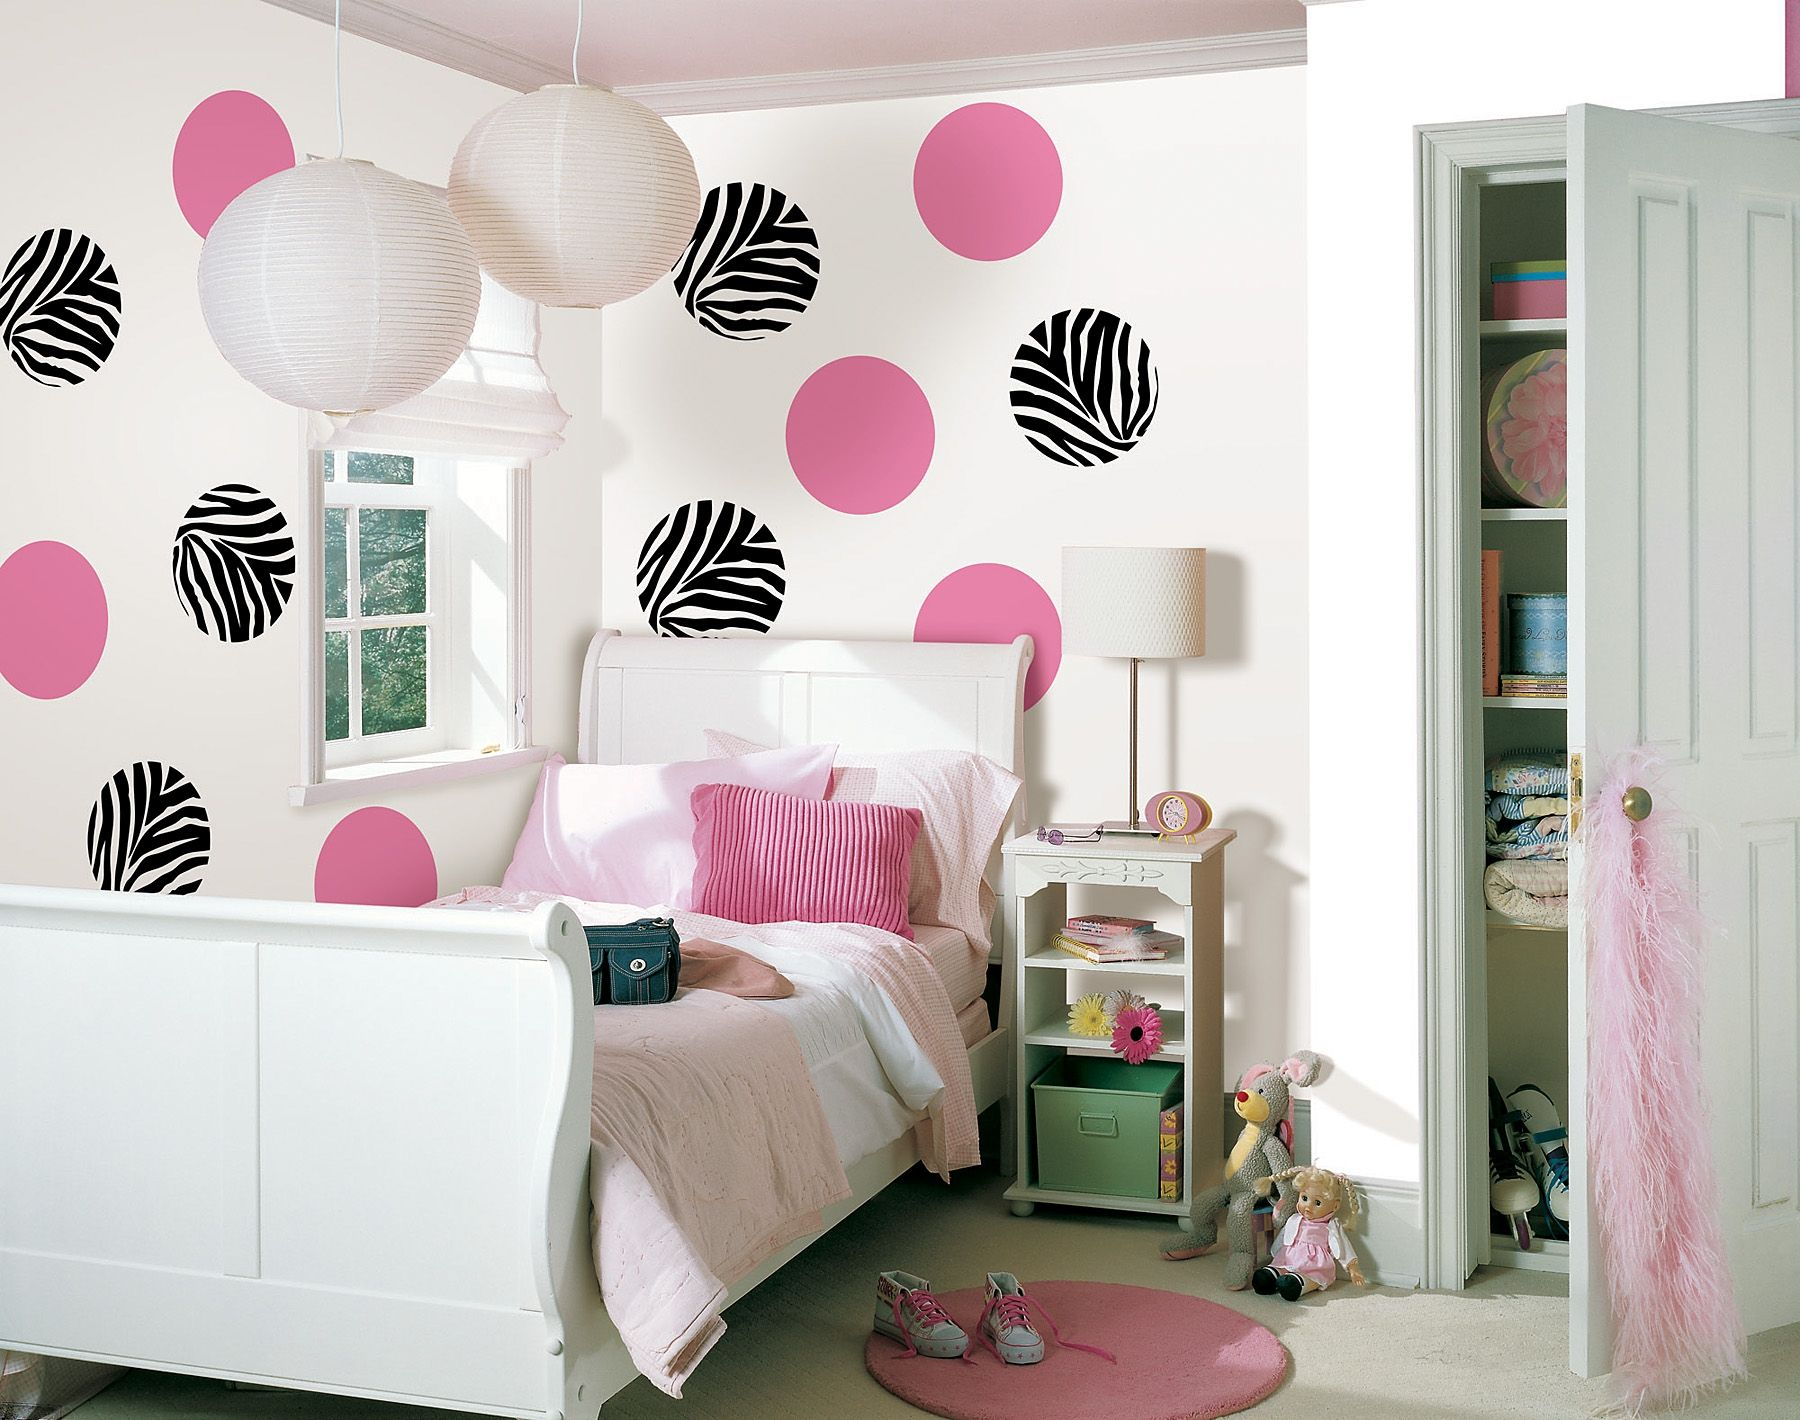 Bed sets for teenage girls zebra - Cool Lamps Decorating Ideas Luminous Teen Room Decor Ideas Cool Wall Motif White Nuance Hanging Lamps